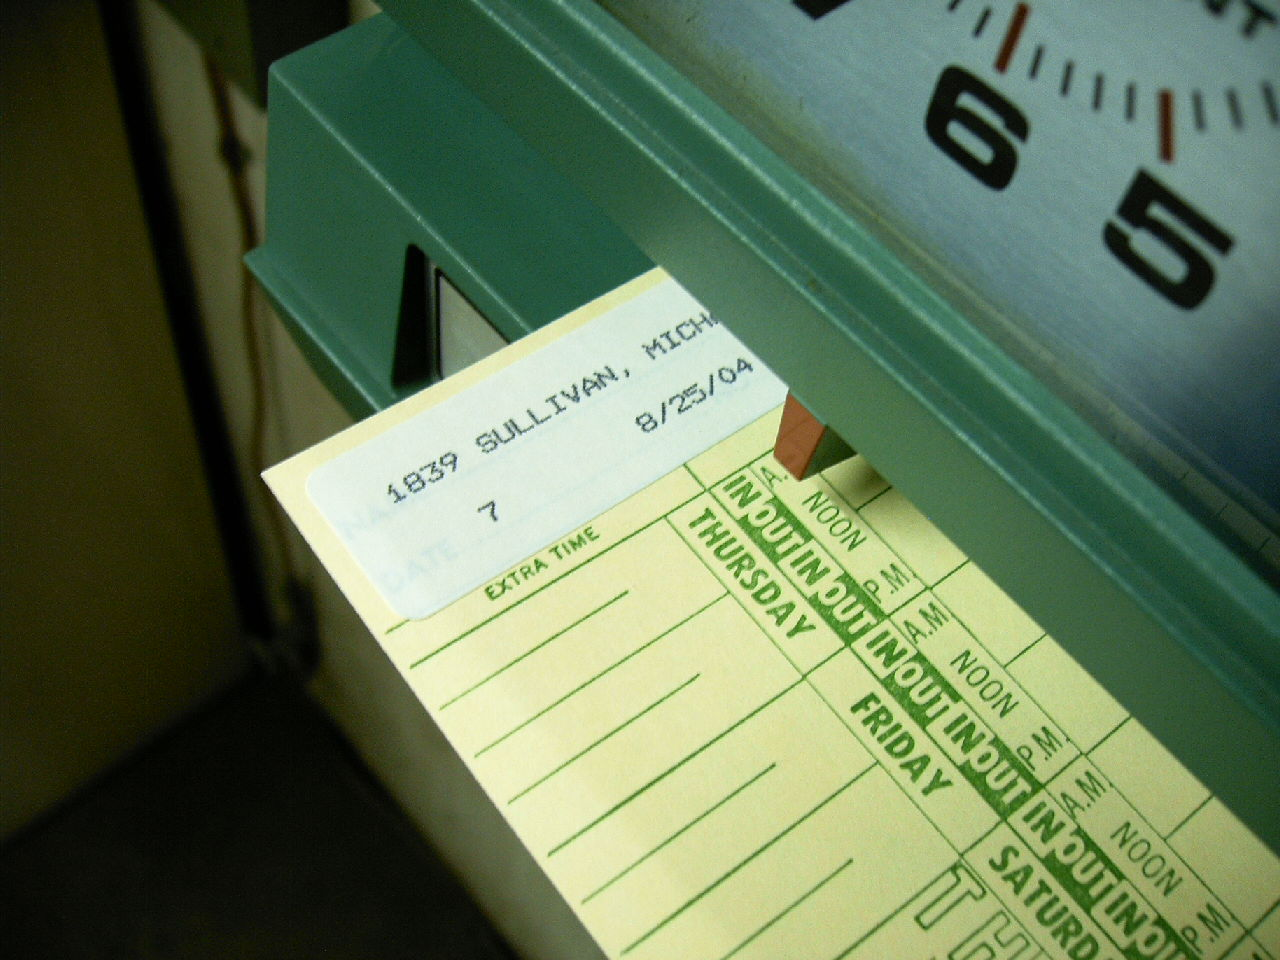 image of a worker's time card being punched